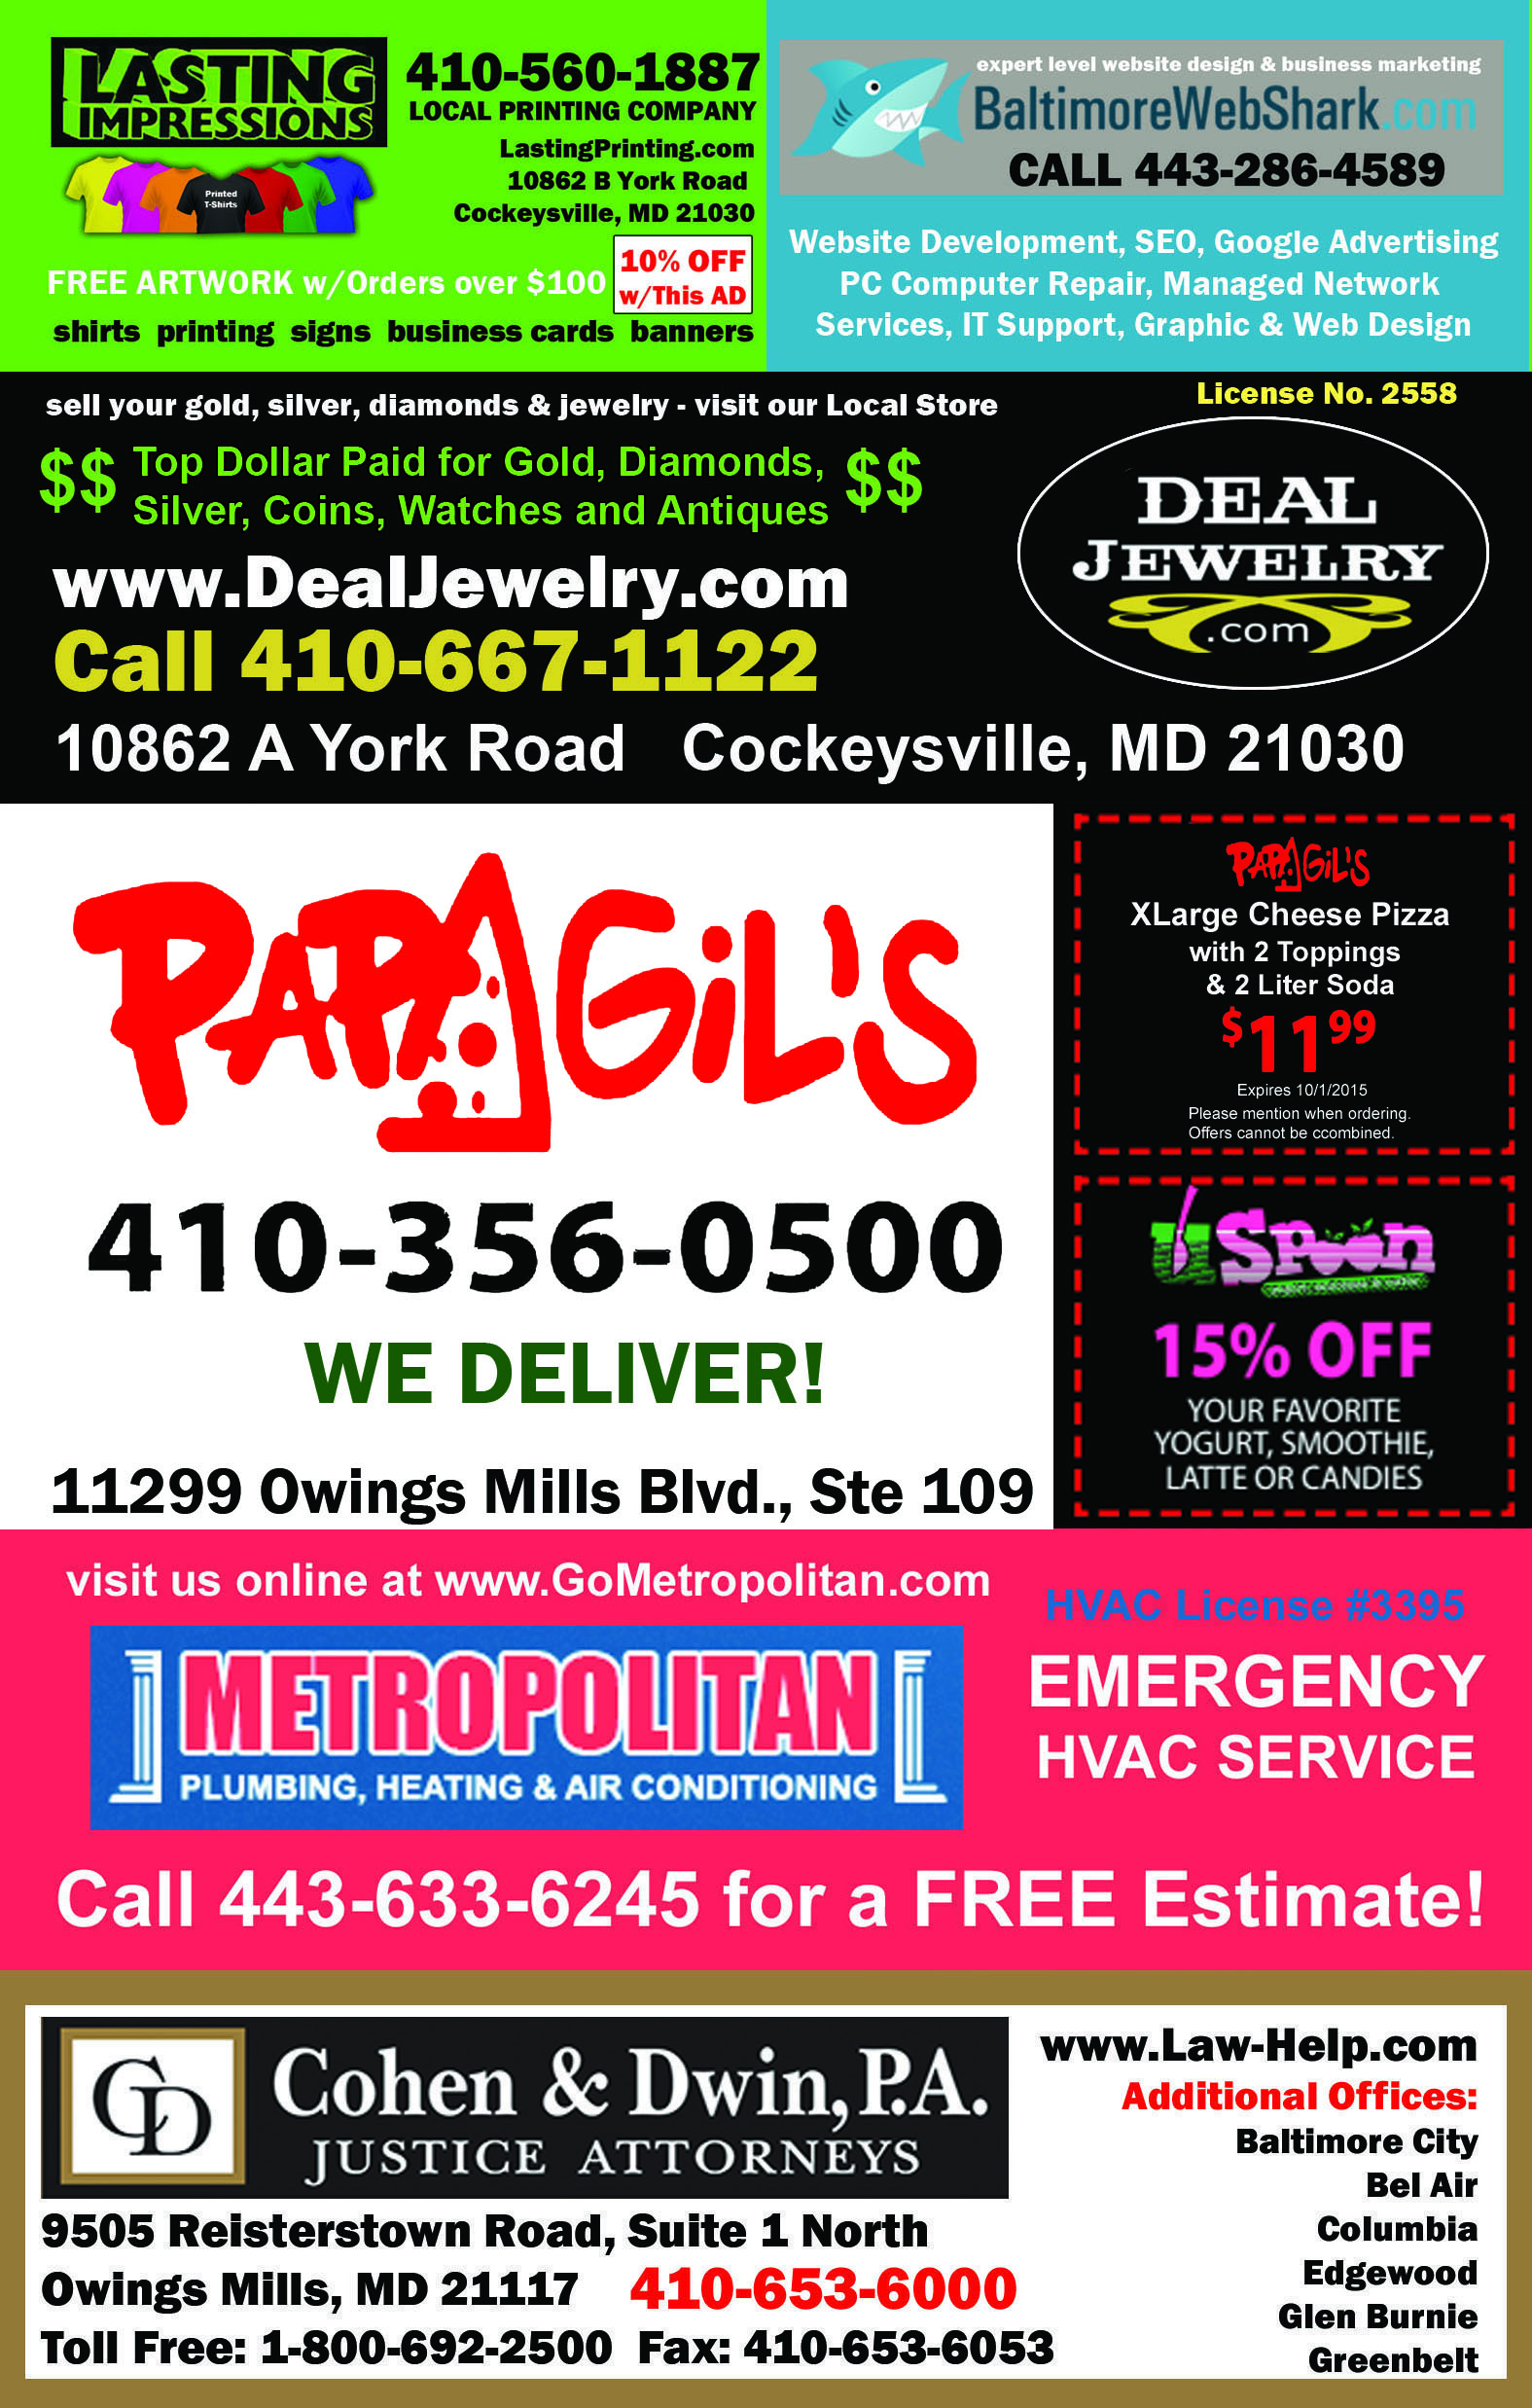 Papa-Gils-pizza-Owings-Mills-carryout-flyer-updated-3-17-15 - Copy